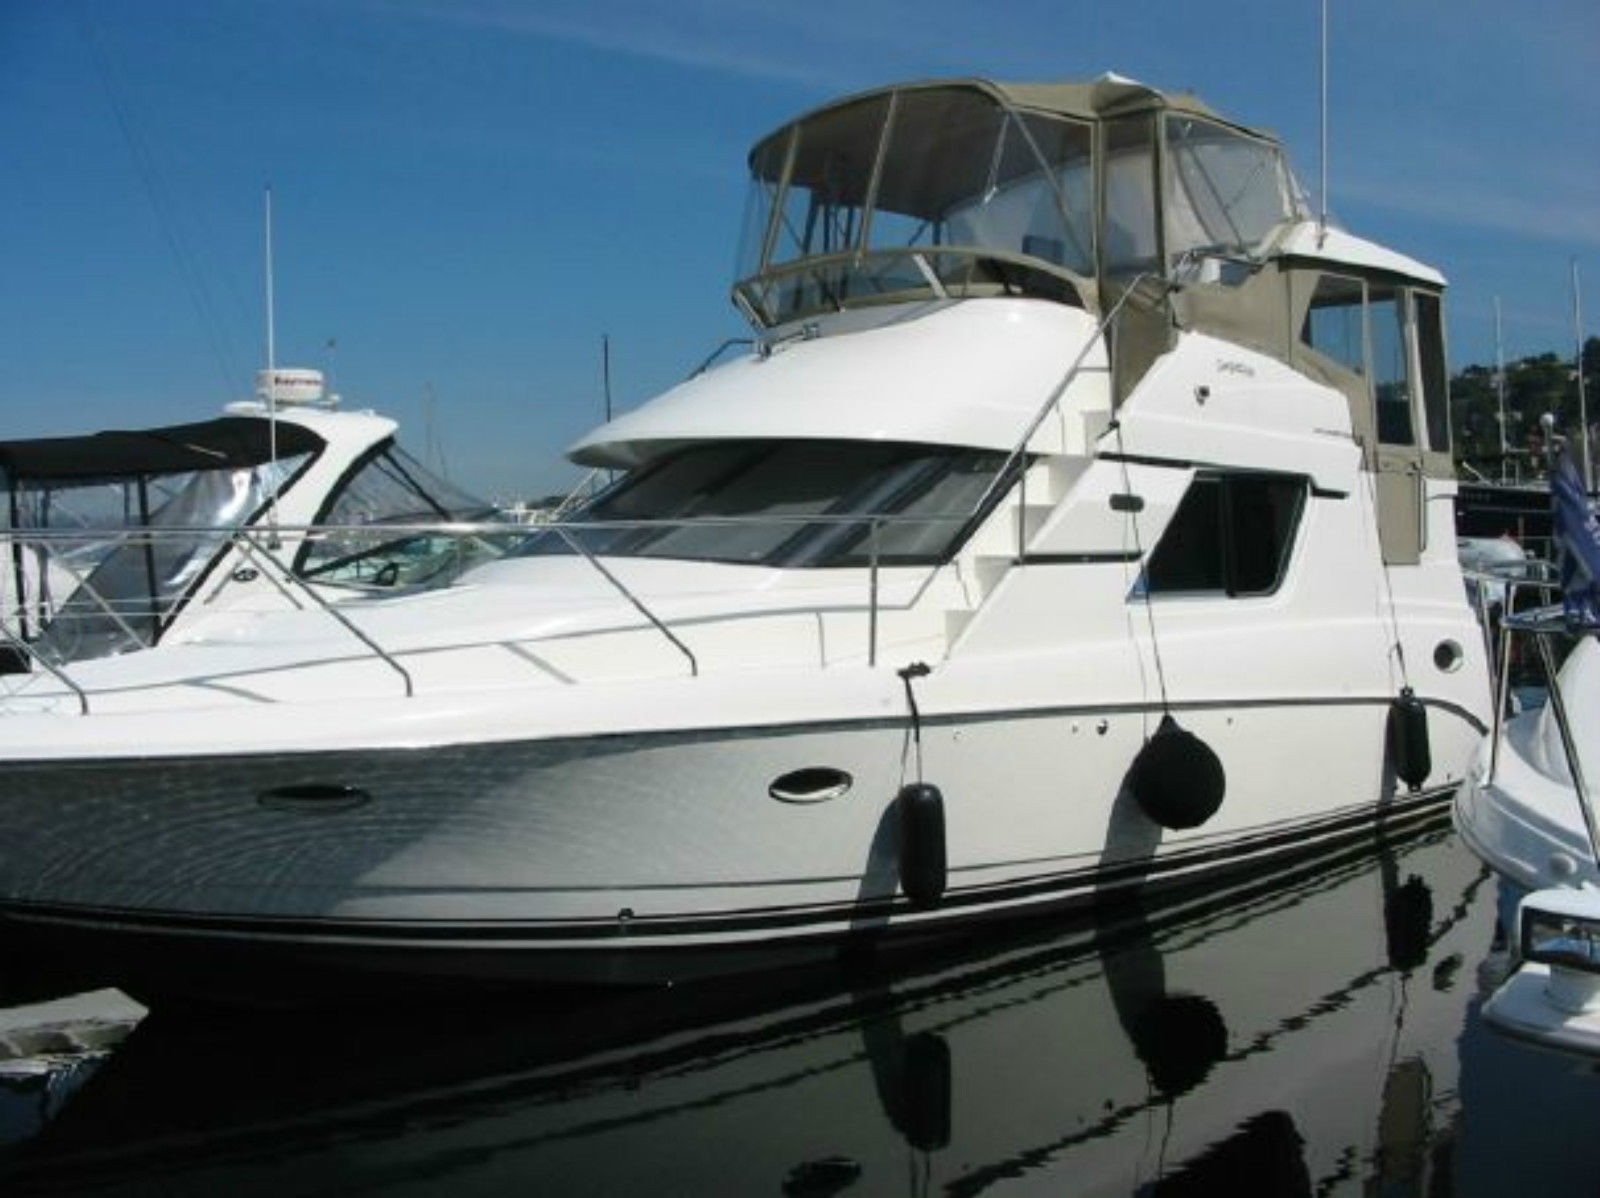 Fountain Boats For Sale >> Silverton 352 Motor Yacht 1997 for sale for $71,500 - Boats-from-USA.com